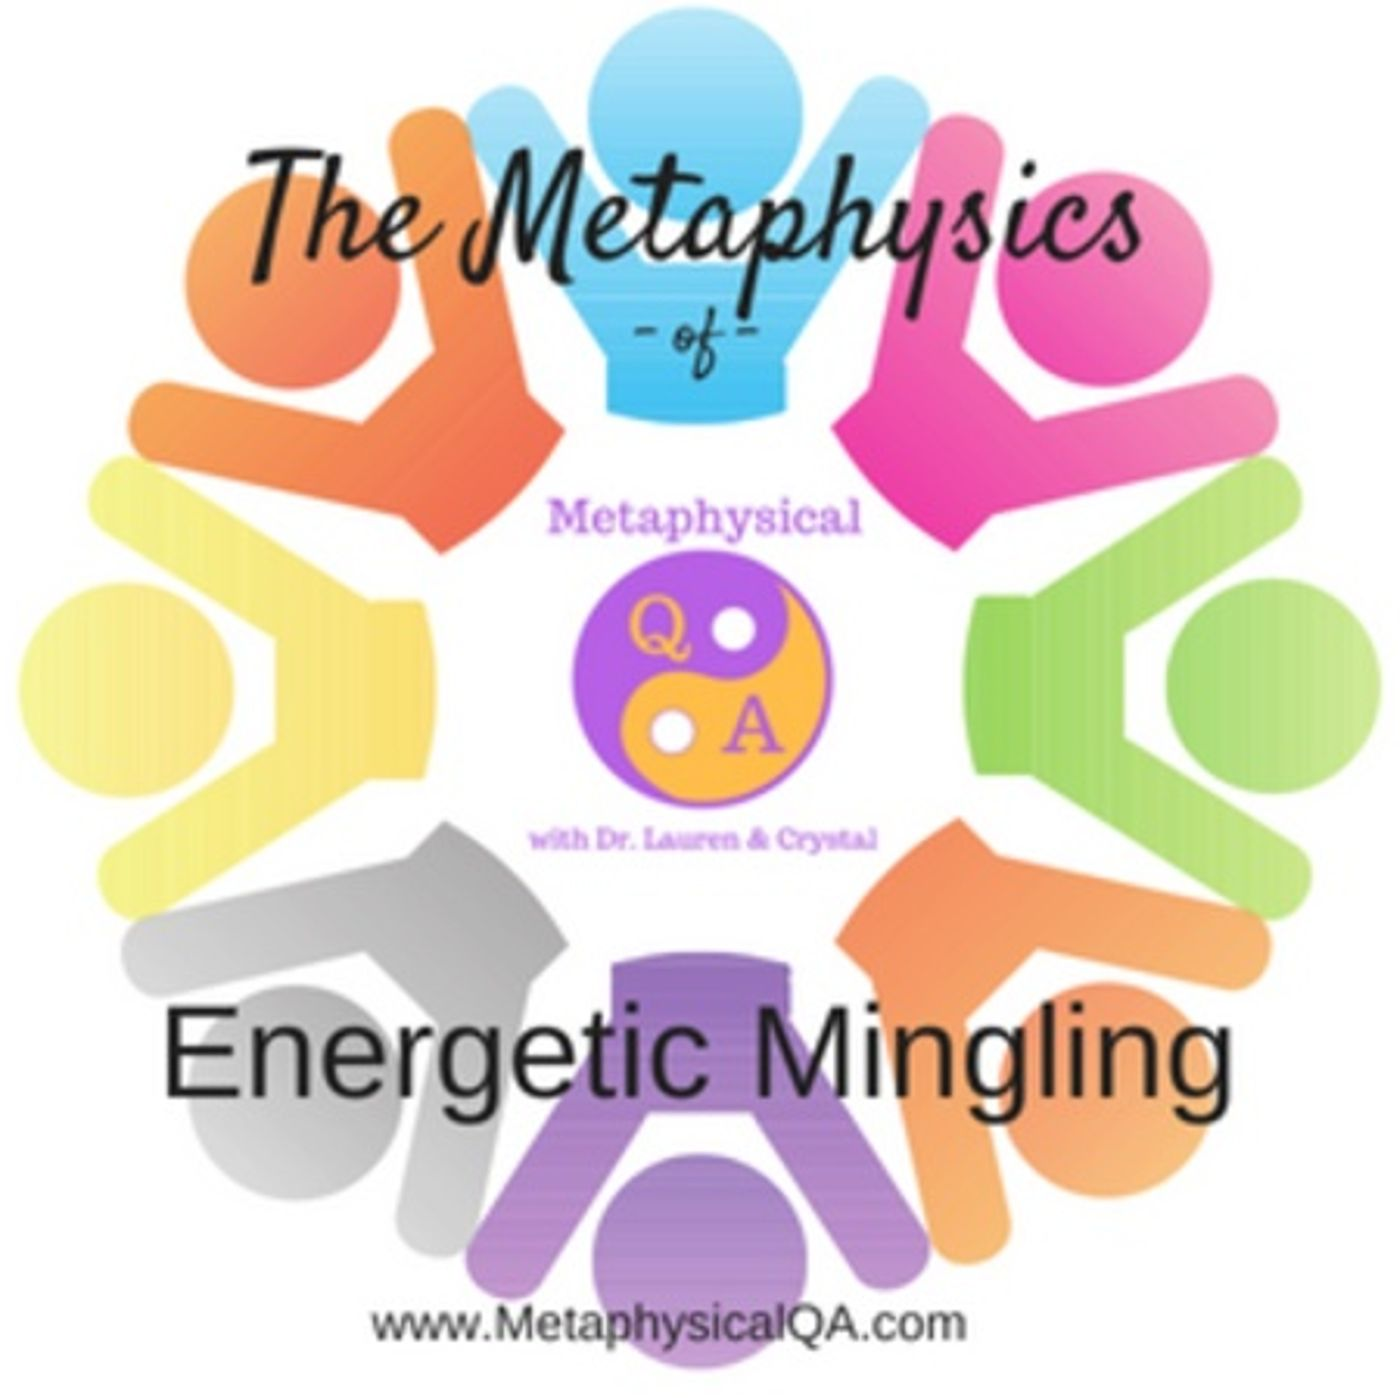 Metaphysics of Energetic Mingling Podcast with Dr. Lauren and Crystal